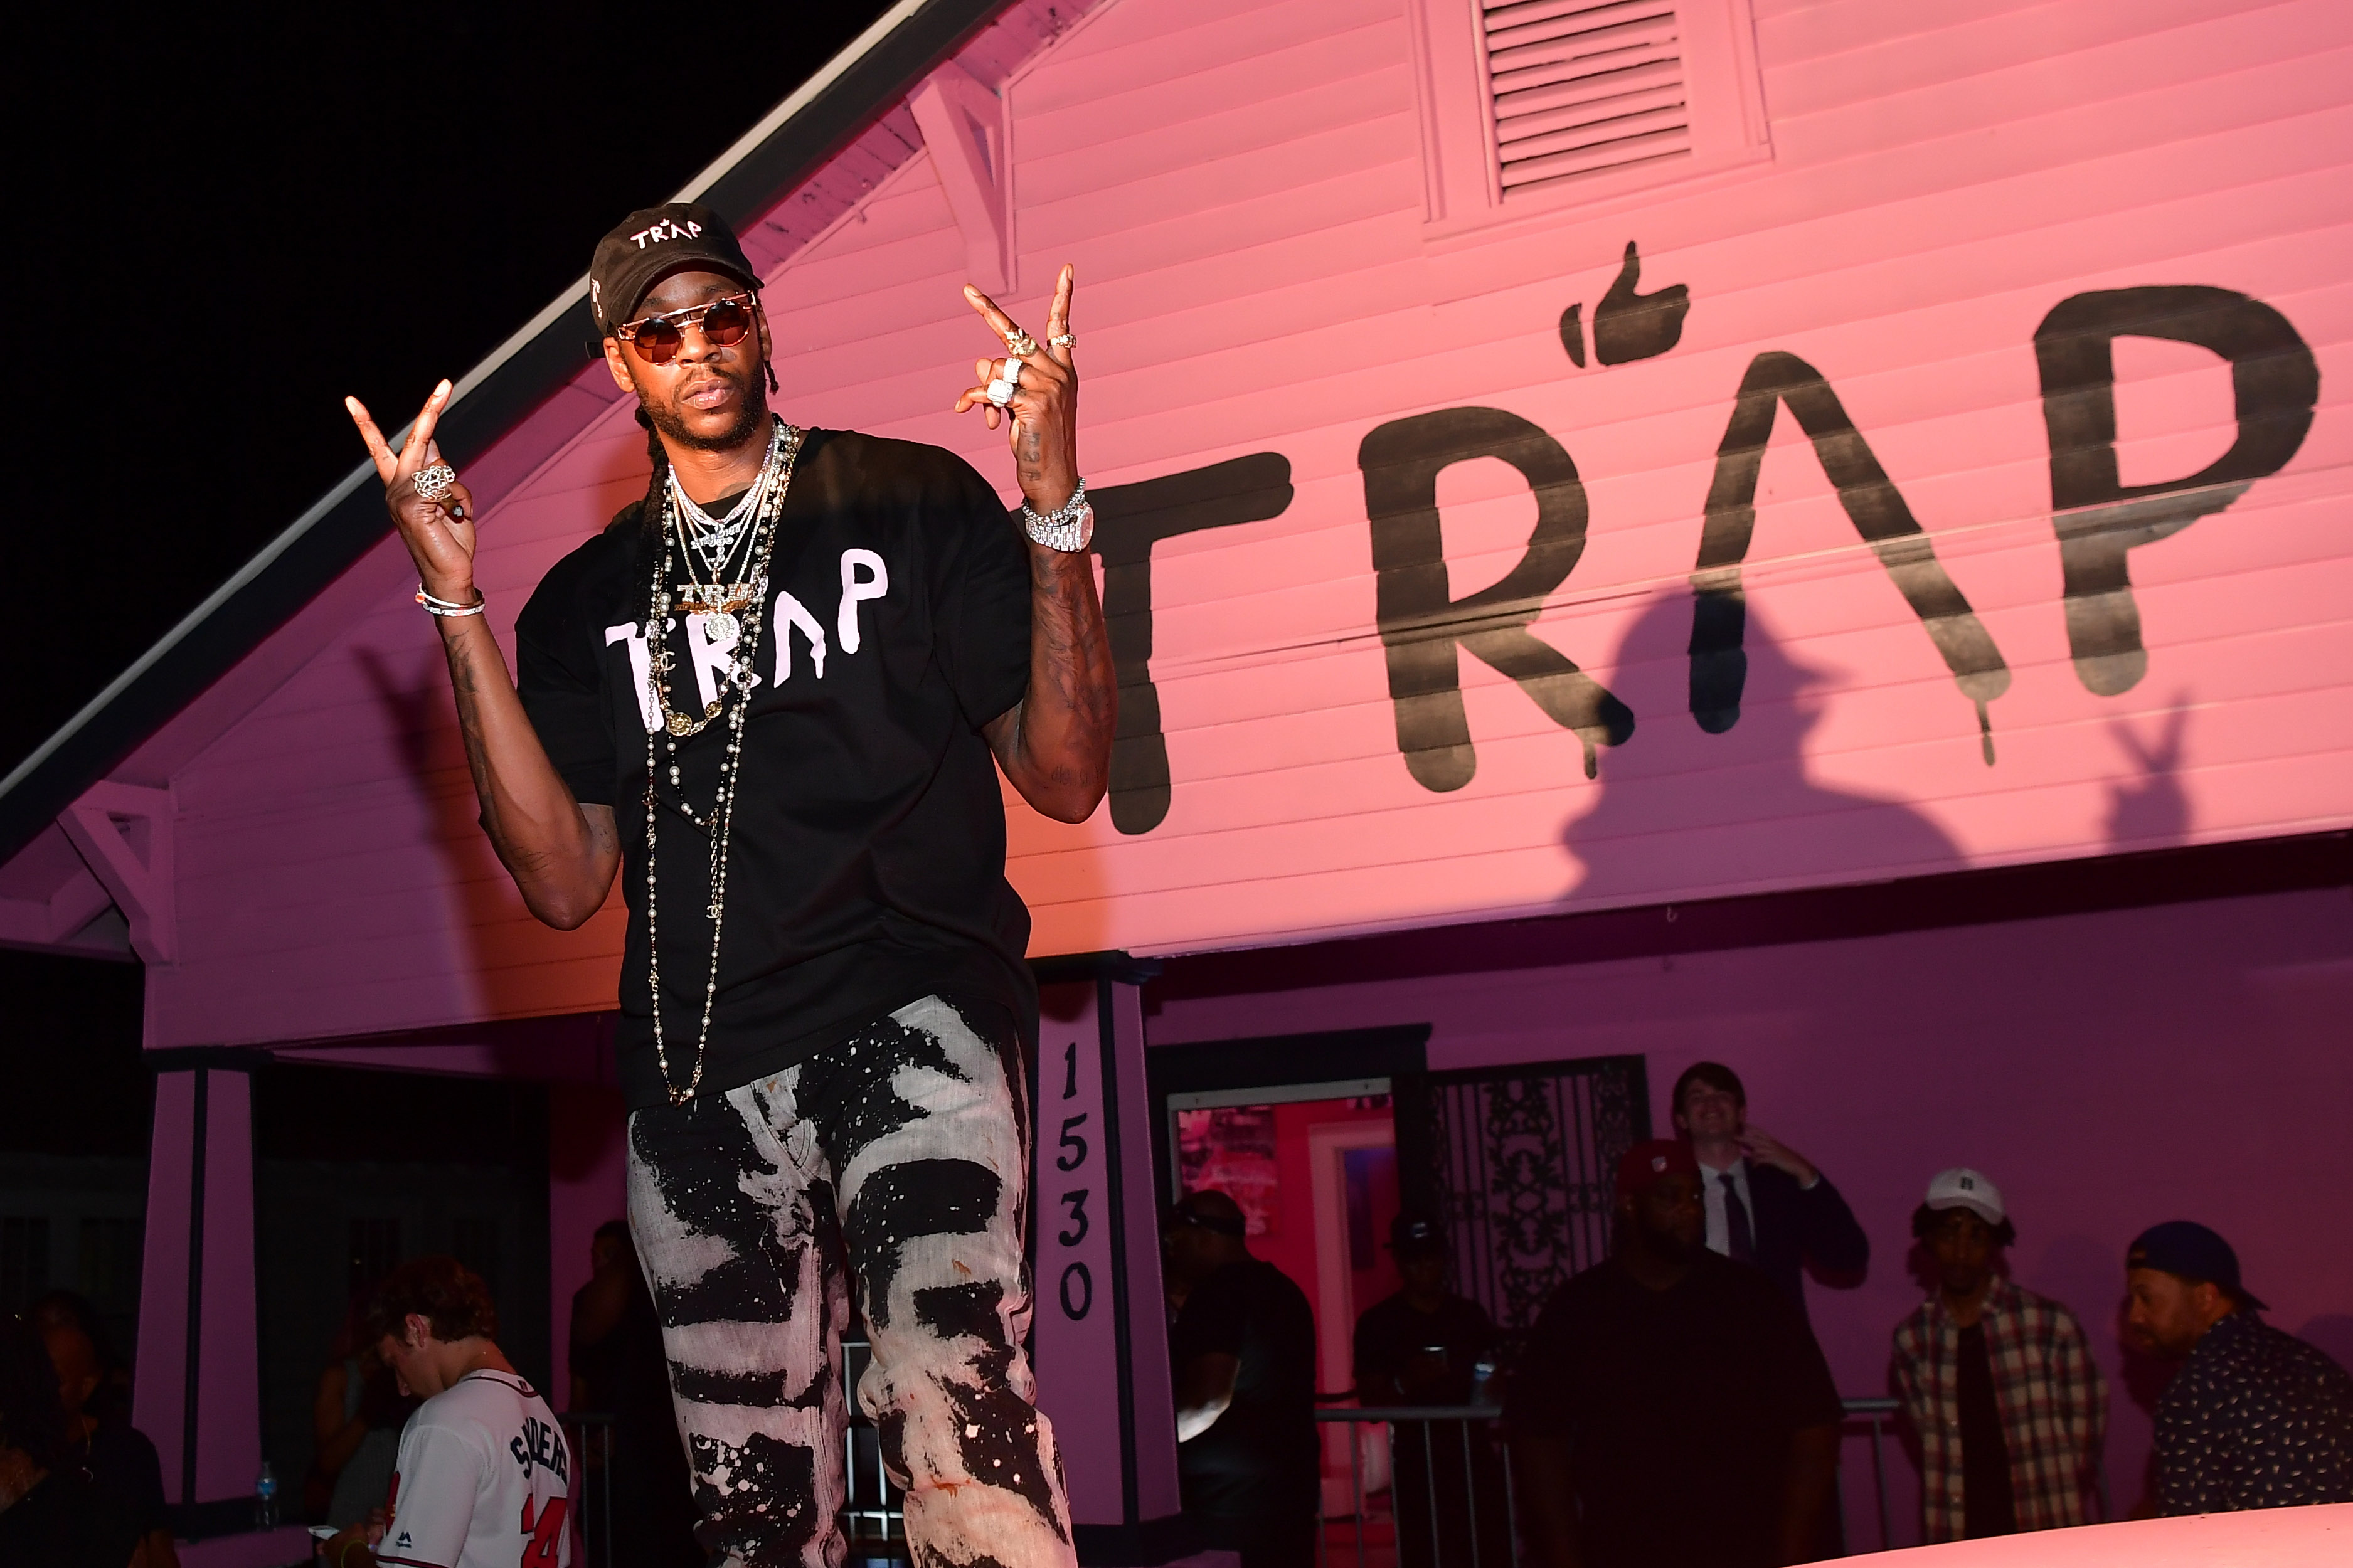 2 Chainz S Pink Trap House Was More Than Just Great Marketing